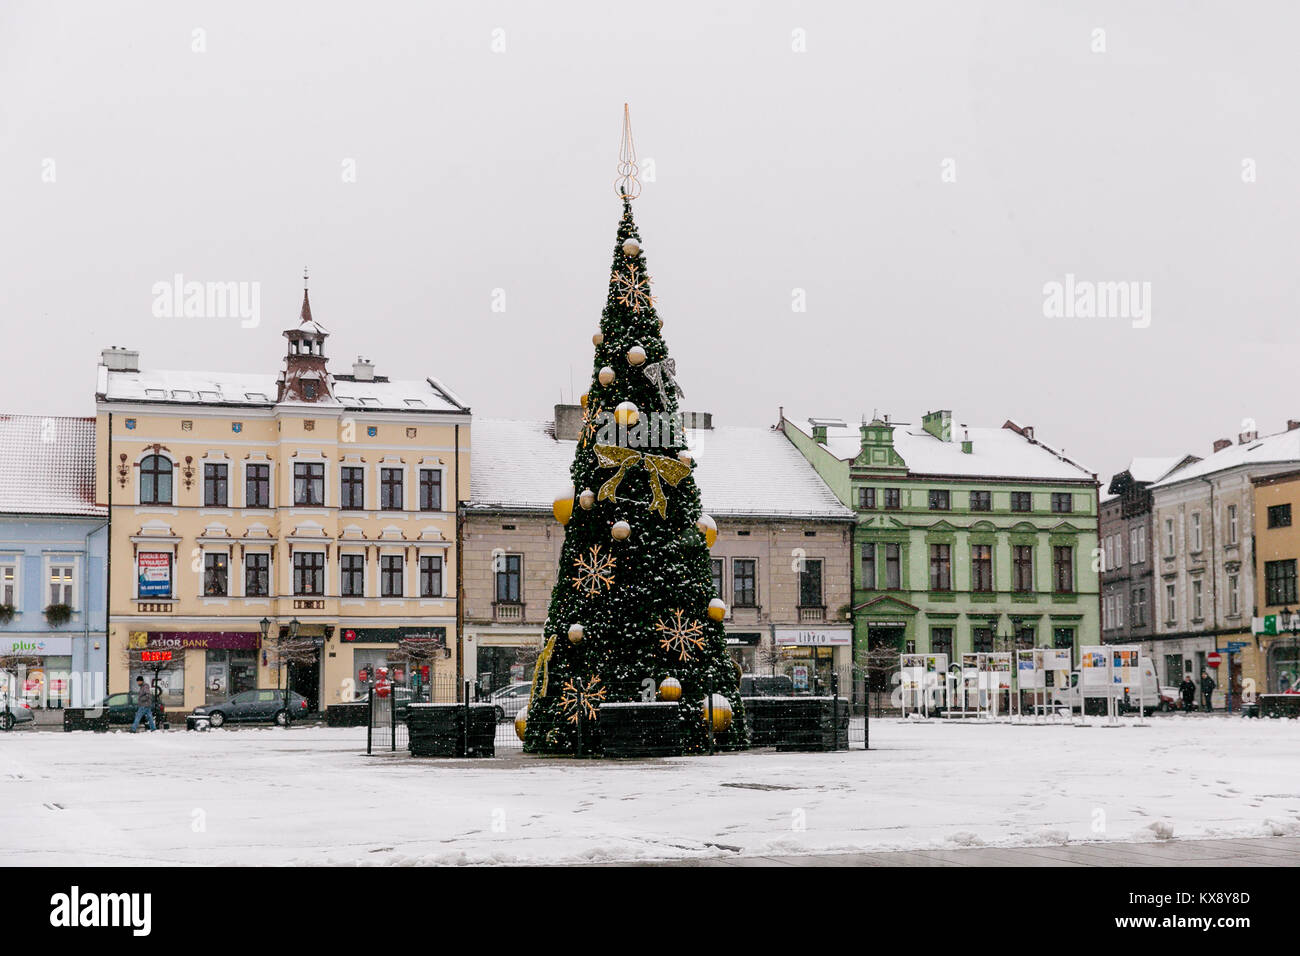 Christmas Tree In Old Town Stock Photos & Christmas Tree In Old Town ...